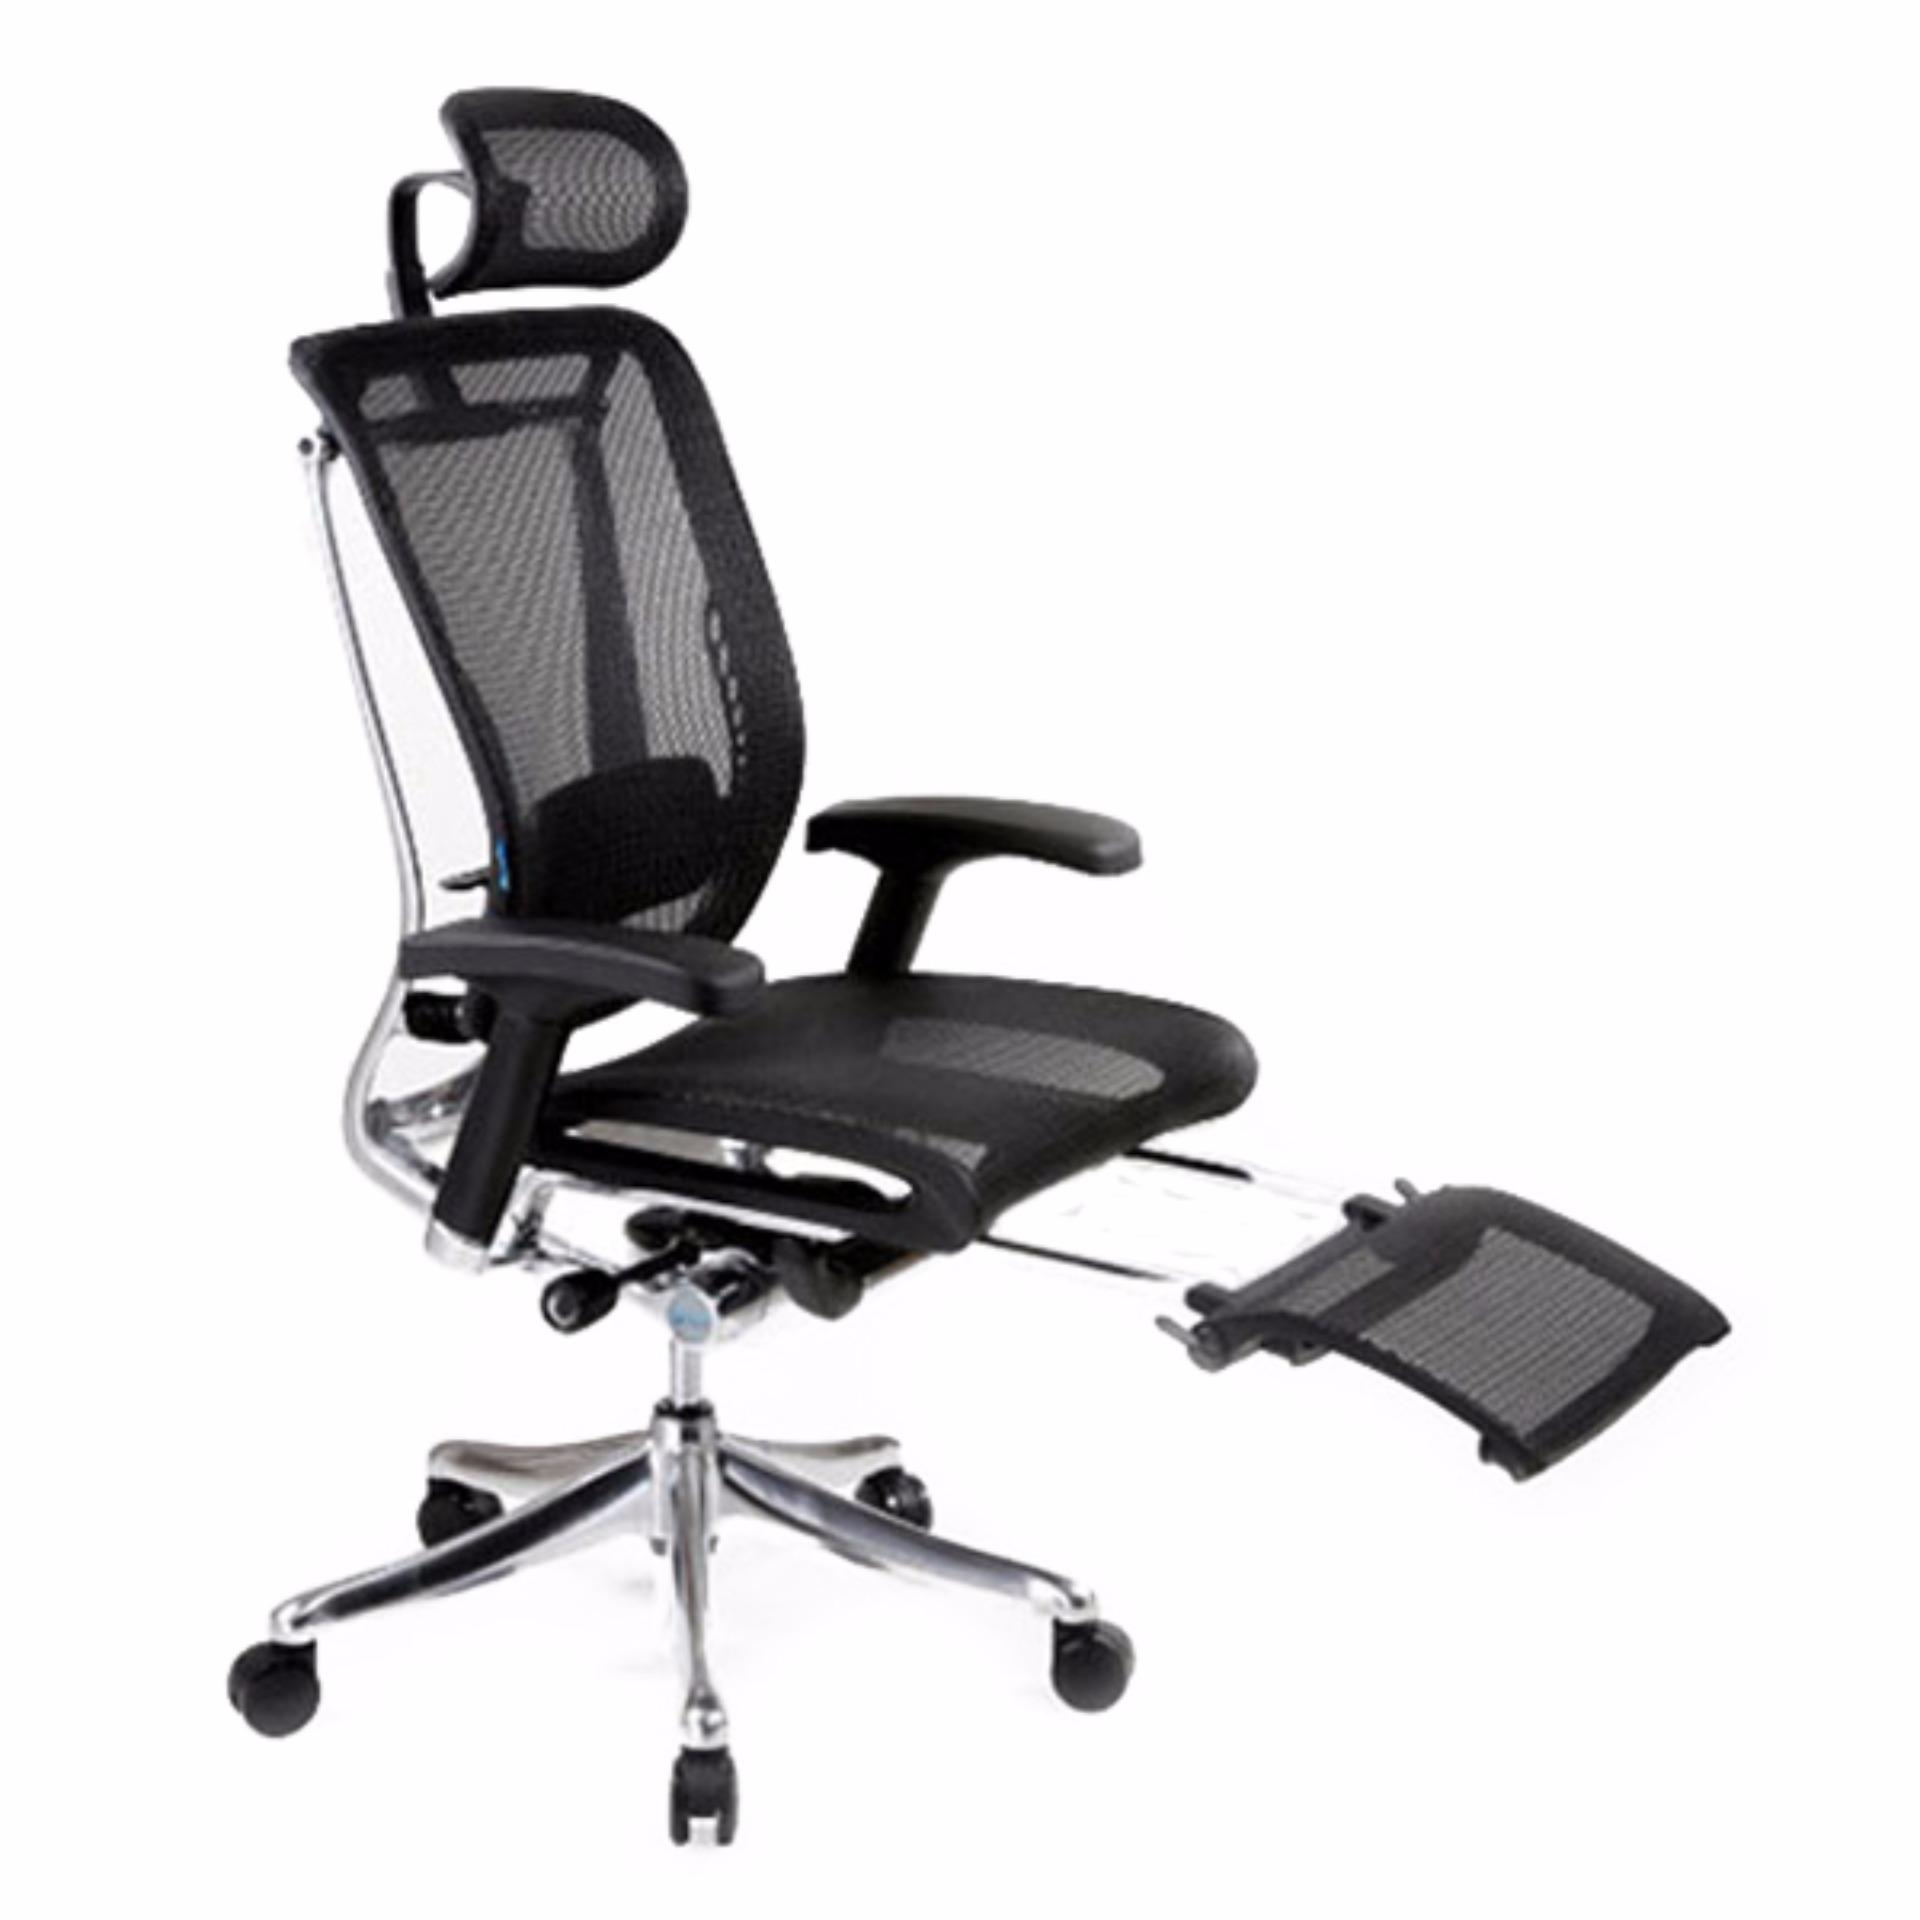 white luxury office chair. Spring Luxury Office Chair With Legrest (Black)(Installation Option Available) Singapore White